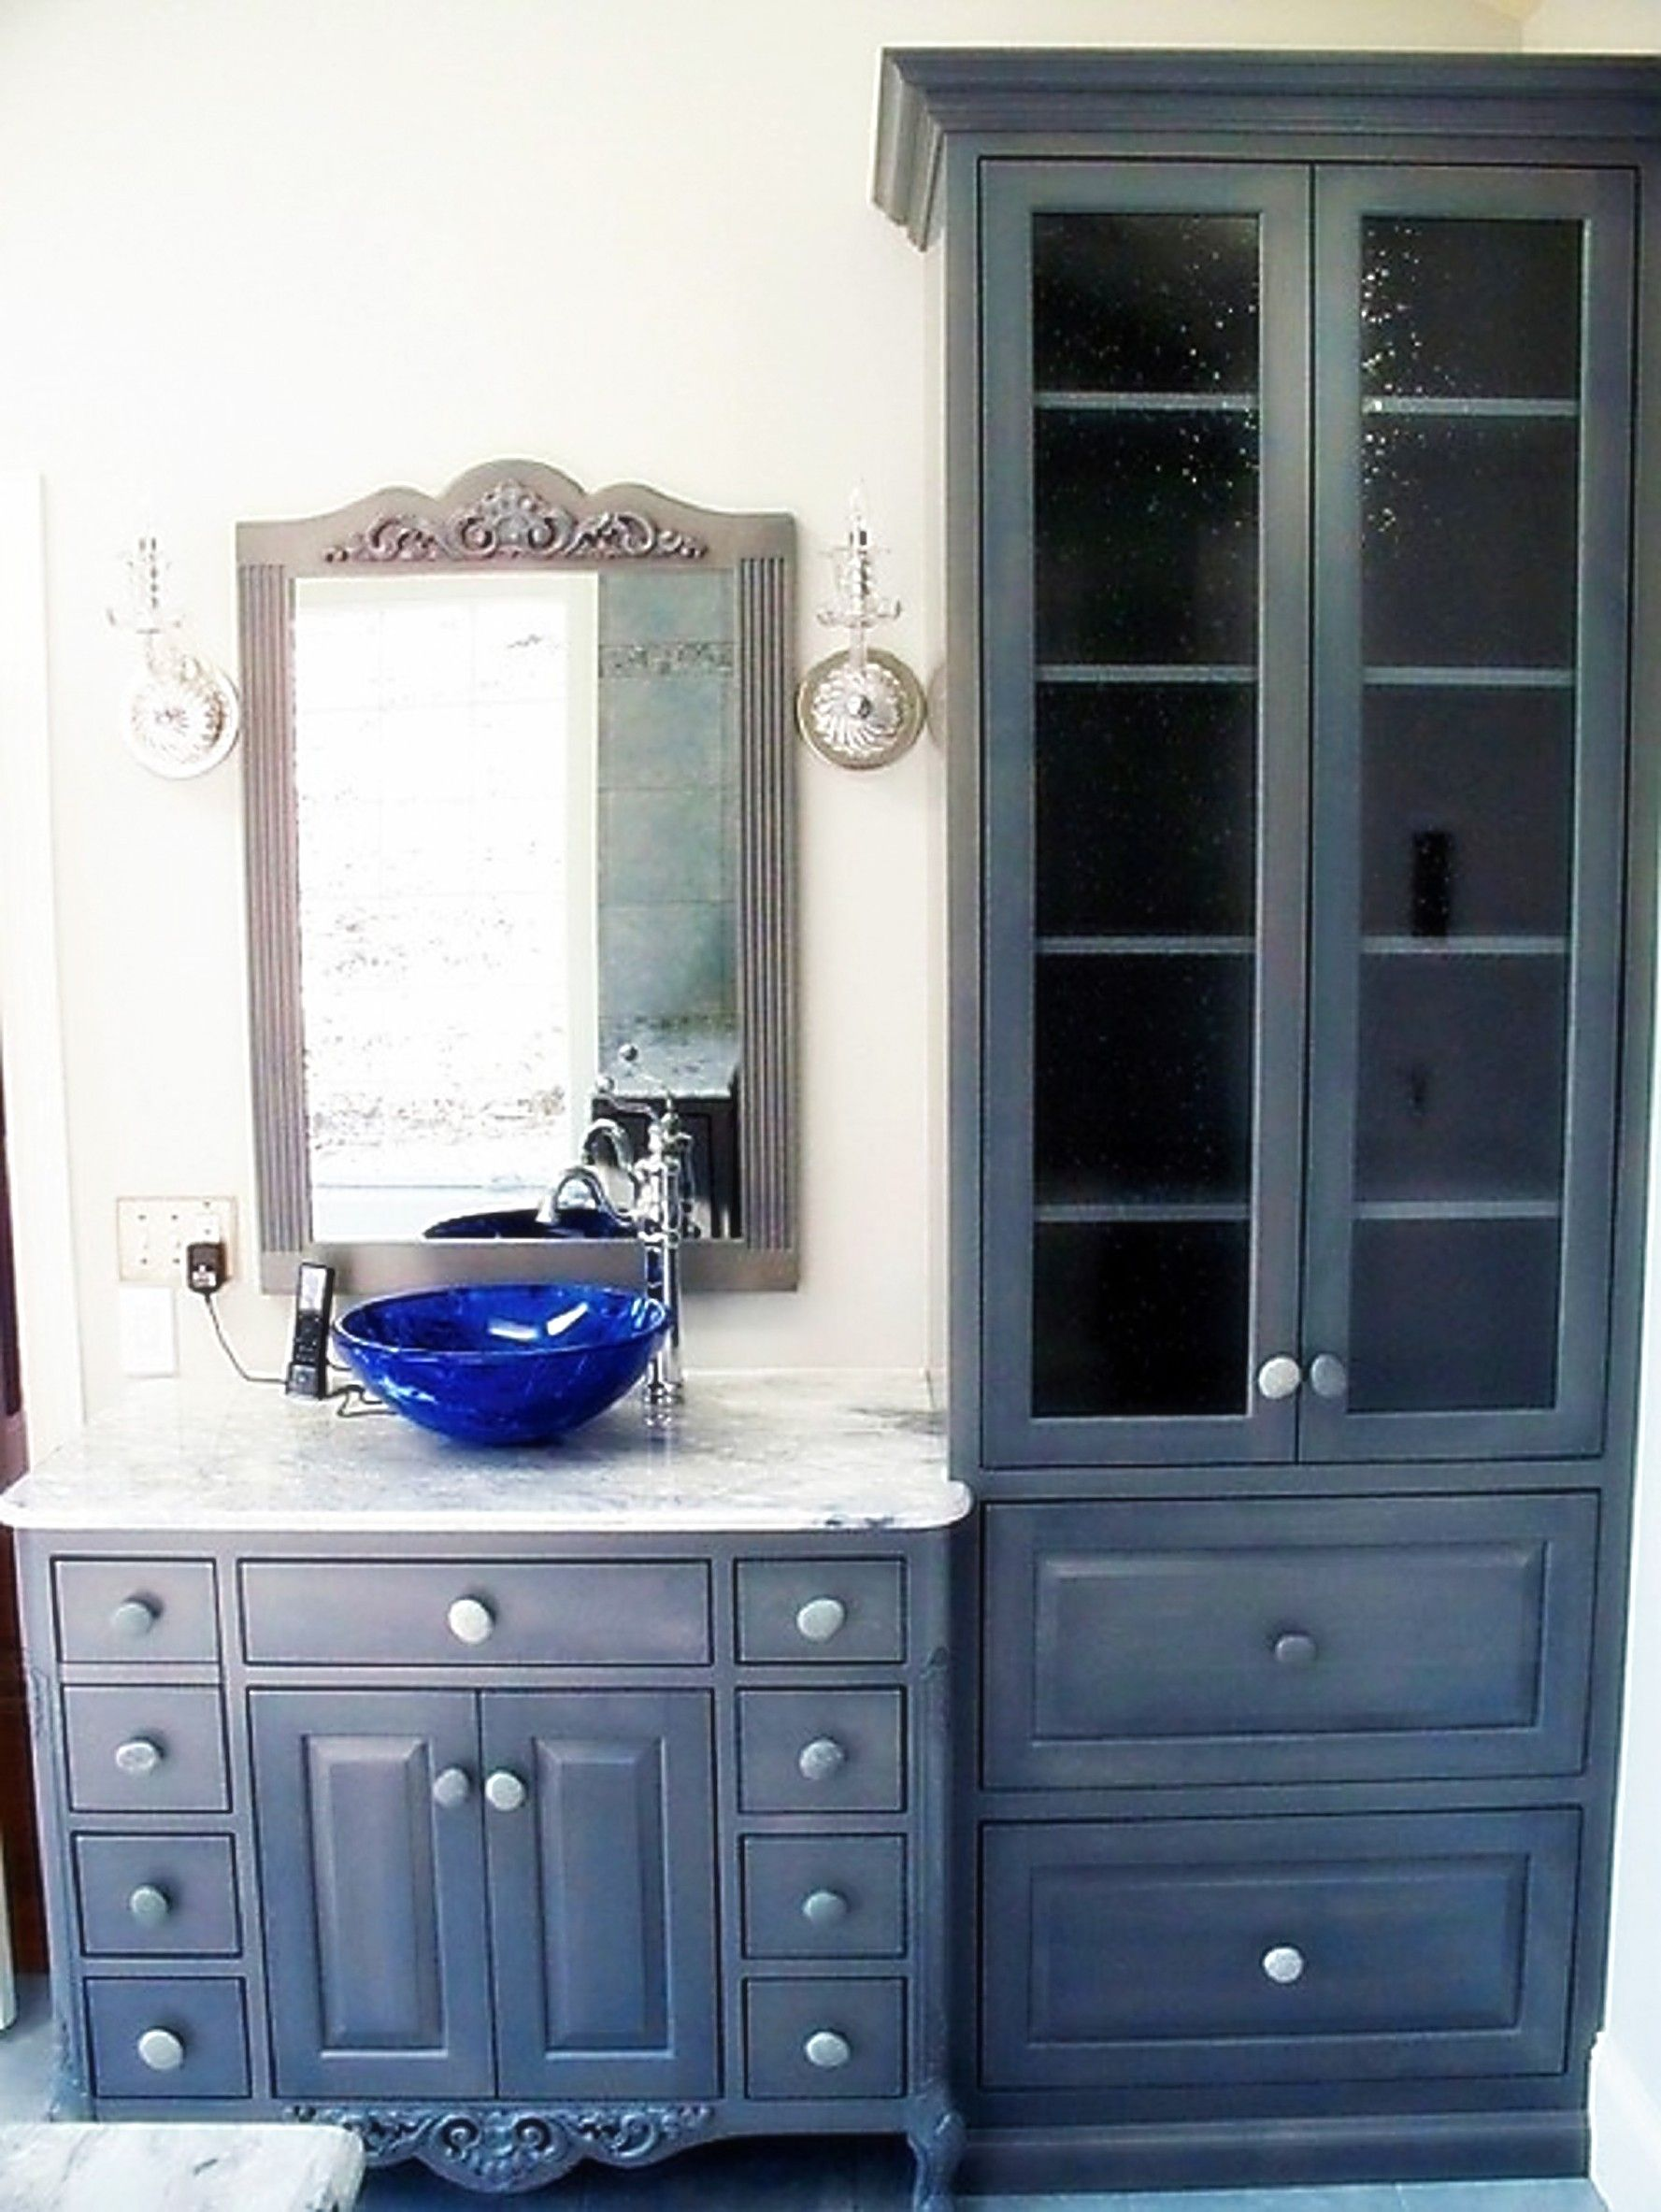 Shabby Chic Bathroom Cabinets Storage For Linen With Vintage Mirror And Wall Light Plu Vintage Bathroom Cabinet Shabby Chic Bathroom Bathroom Furniture Storage